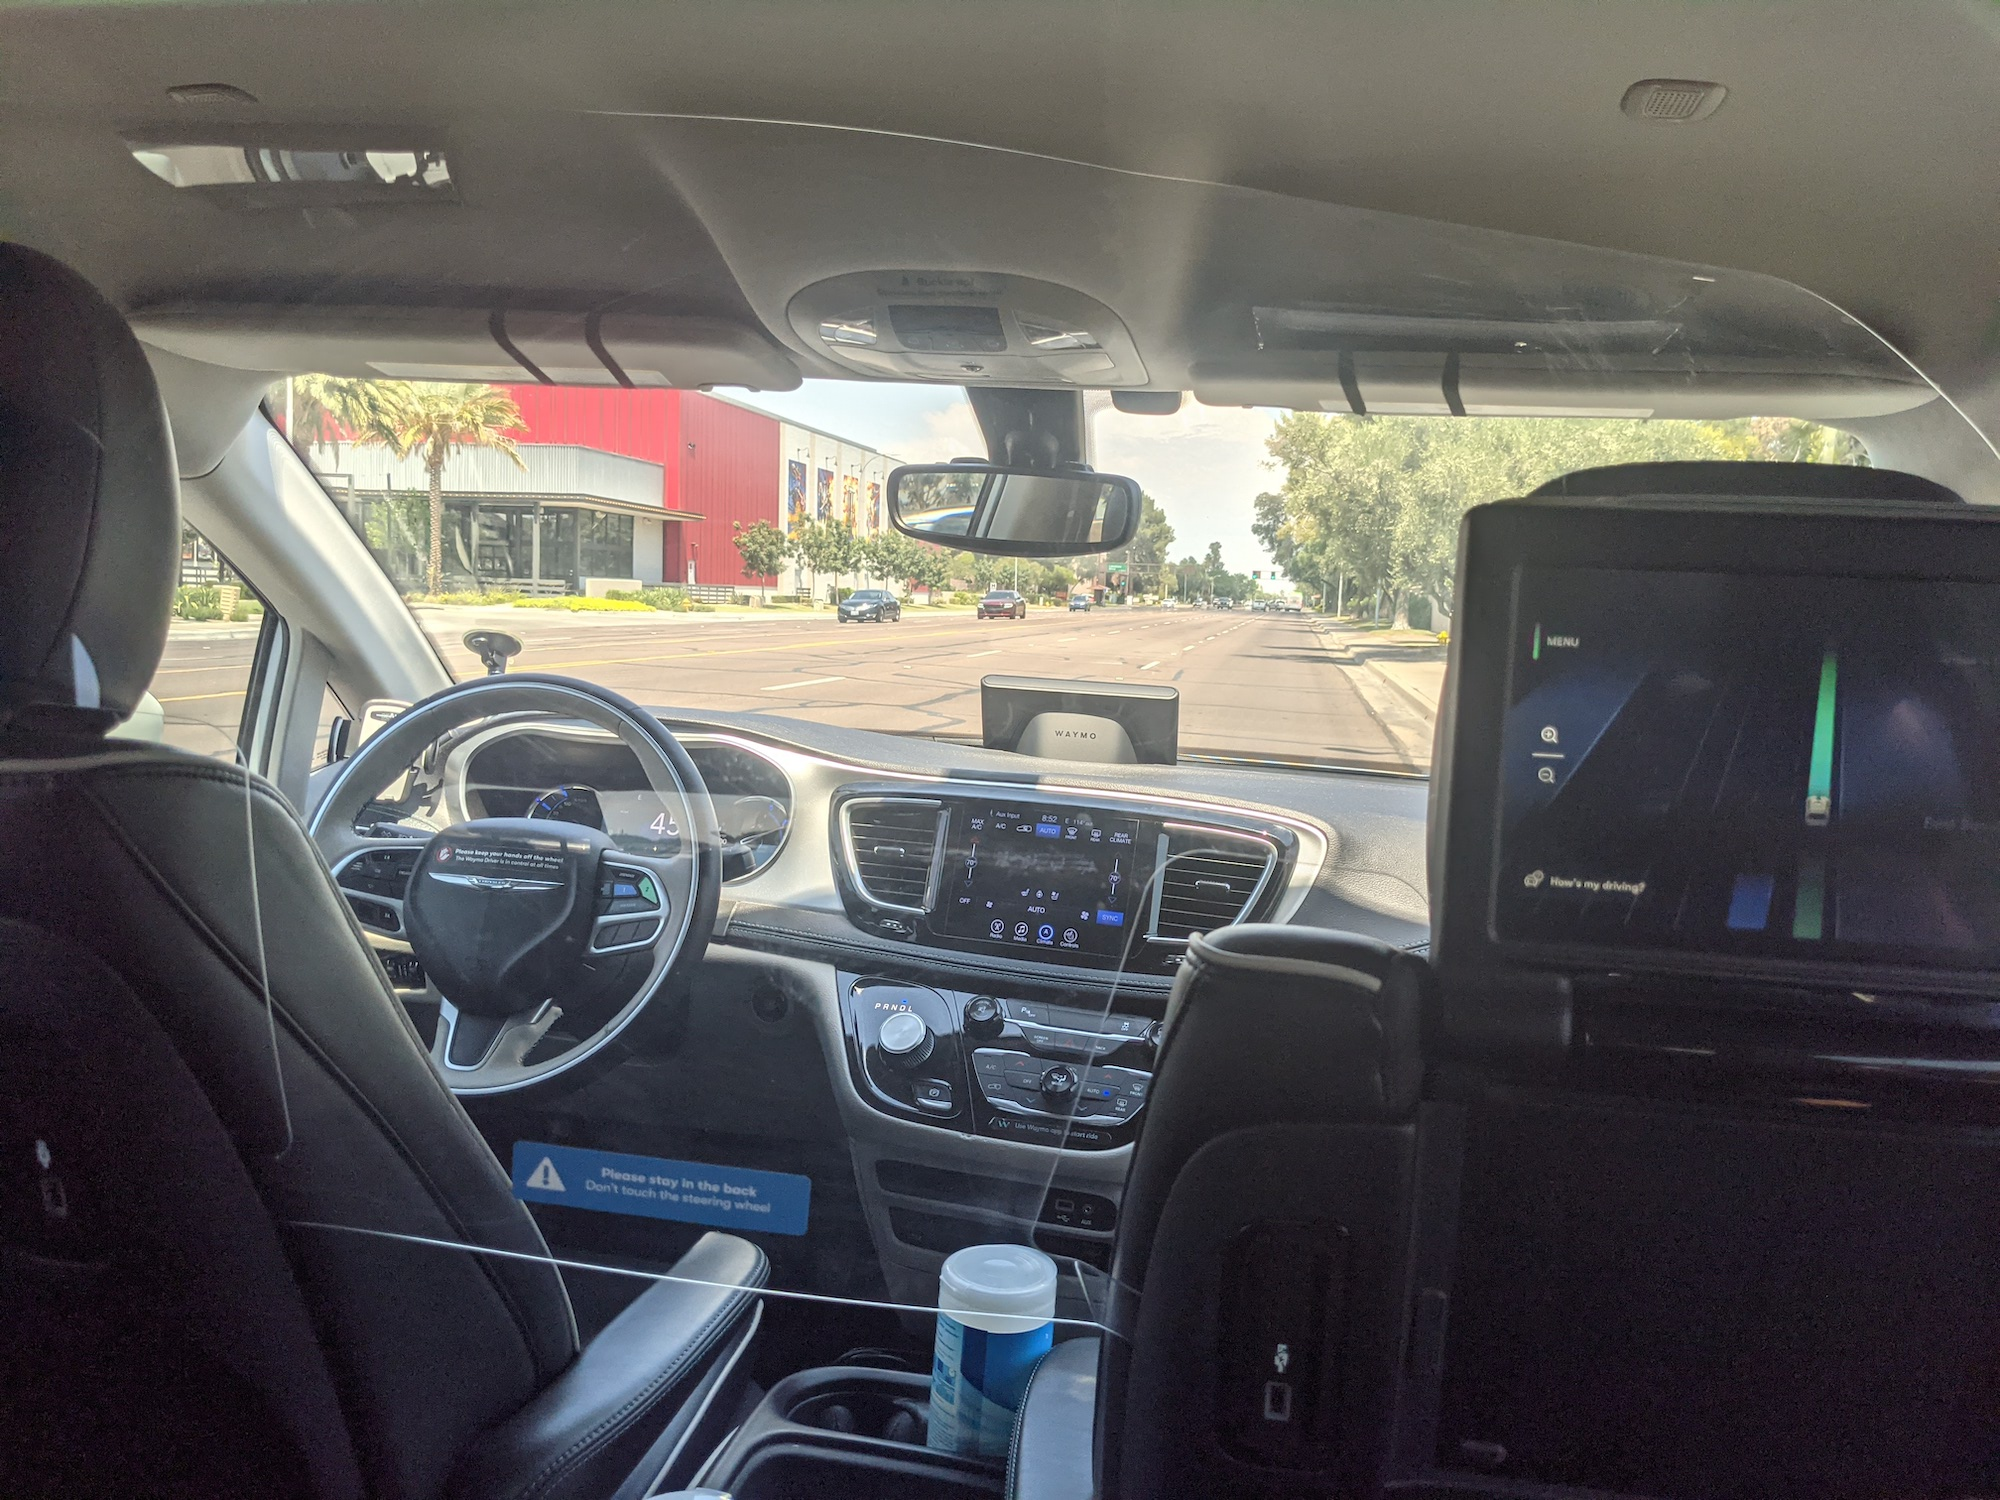 waymo ride view from inside car self-driving driverless